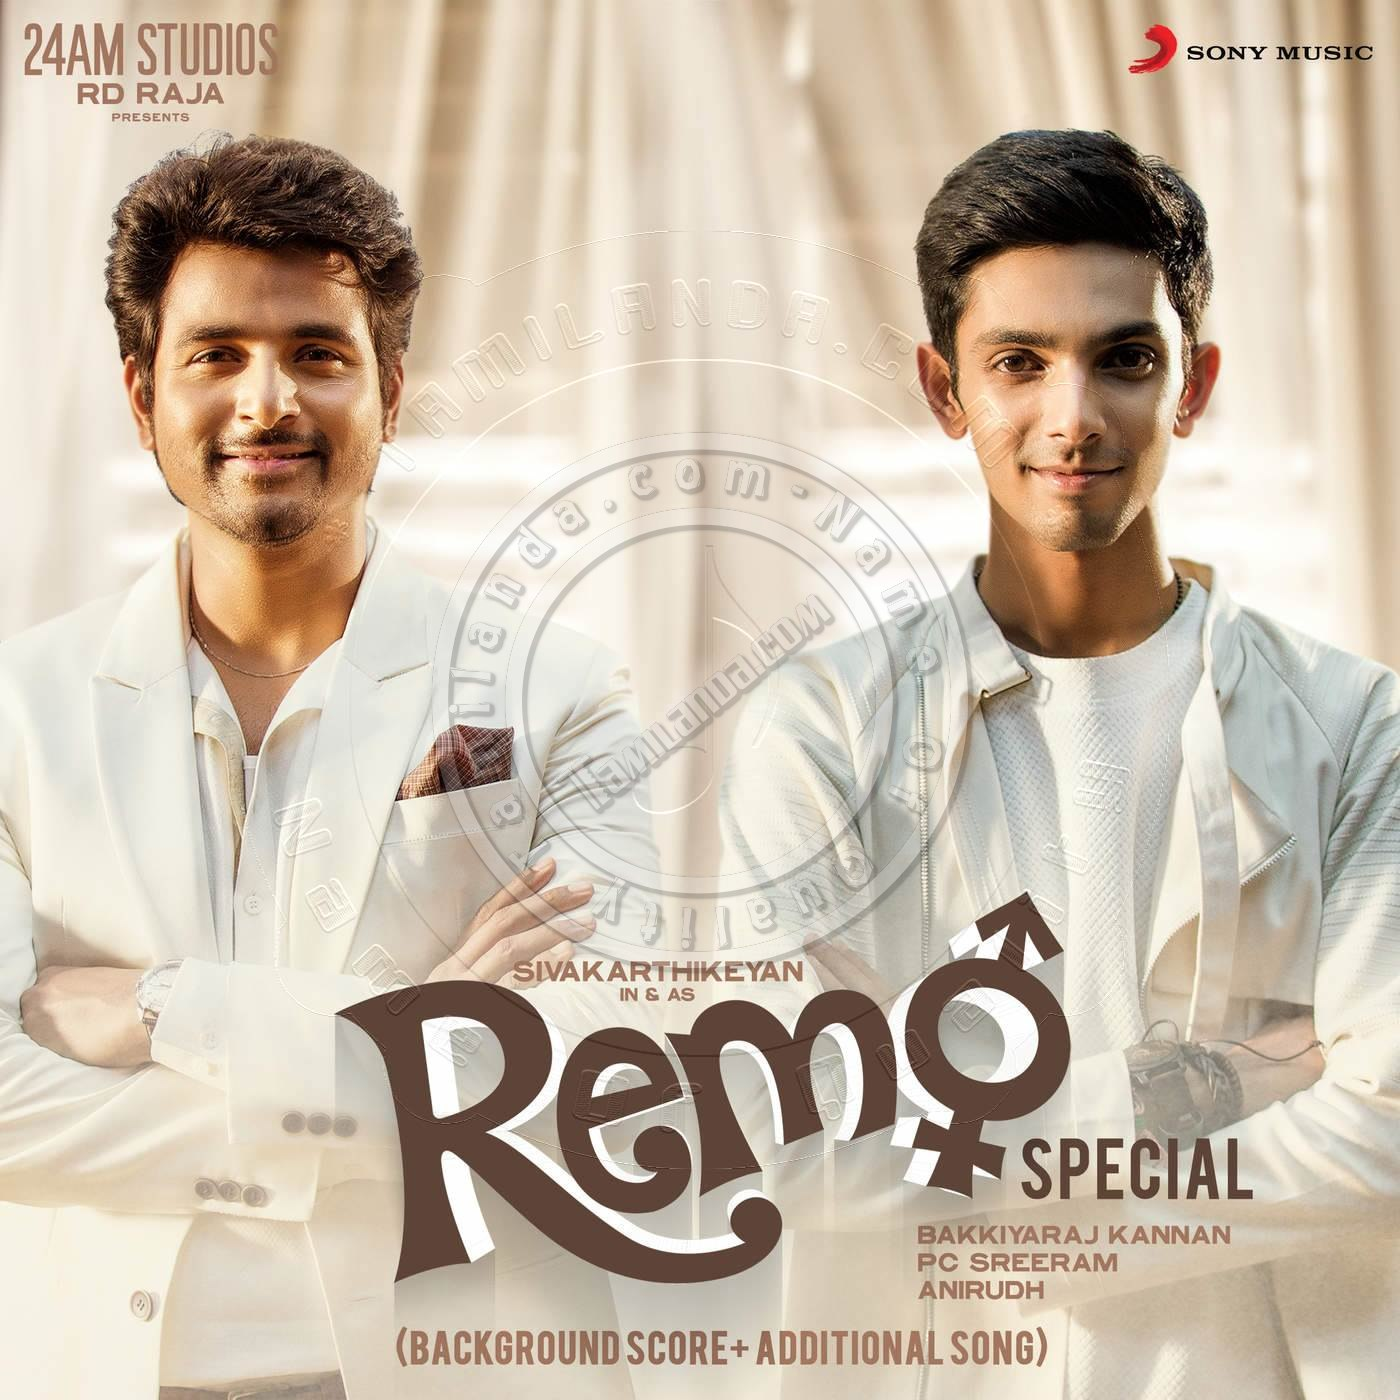 Remo (Original Background Score) 16 BIT FLAC